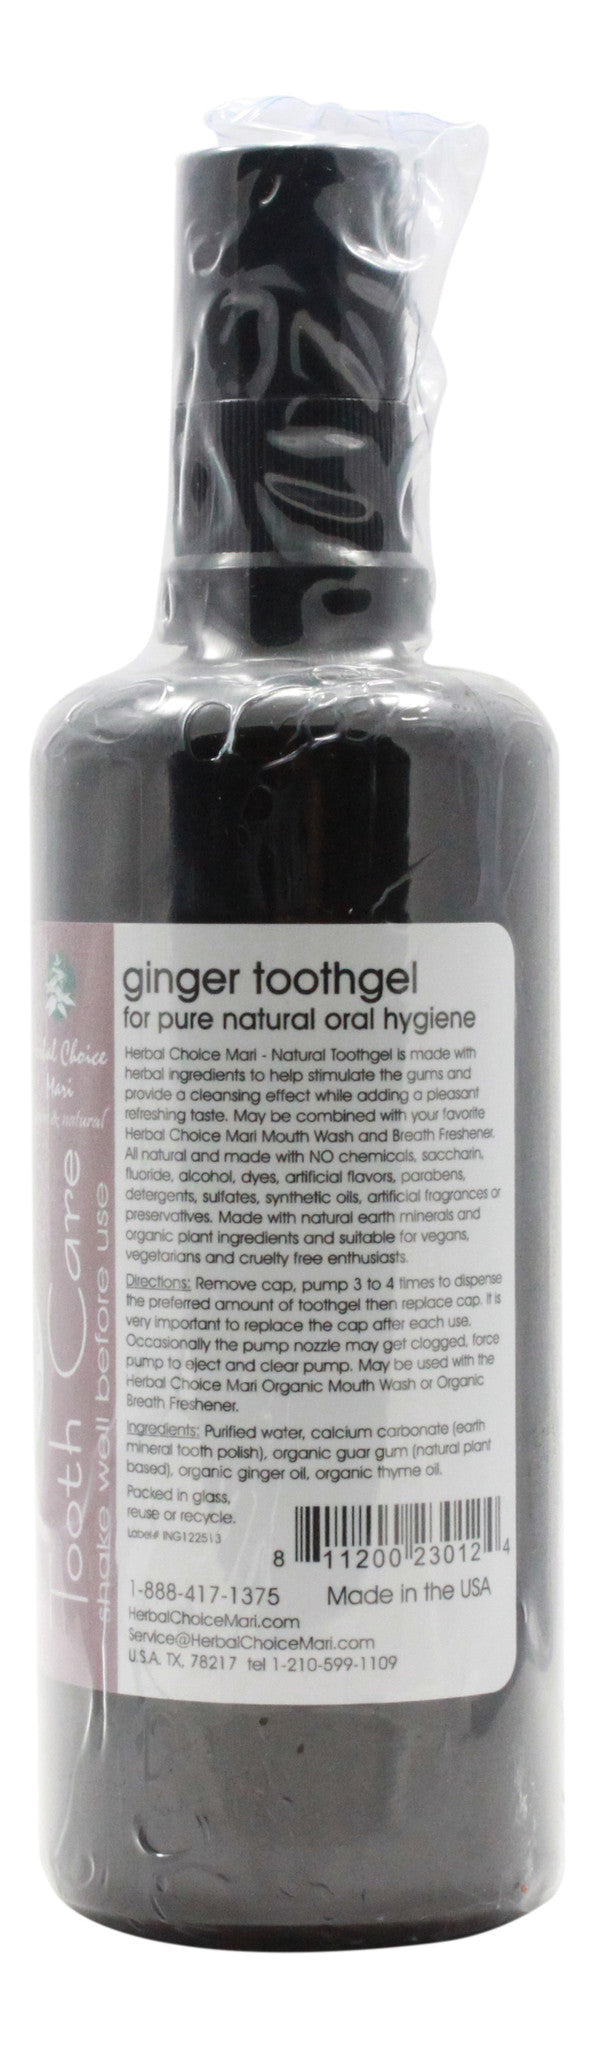 Natural Toothgel - Ginger Original - 3.4 oz Bottle - Info